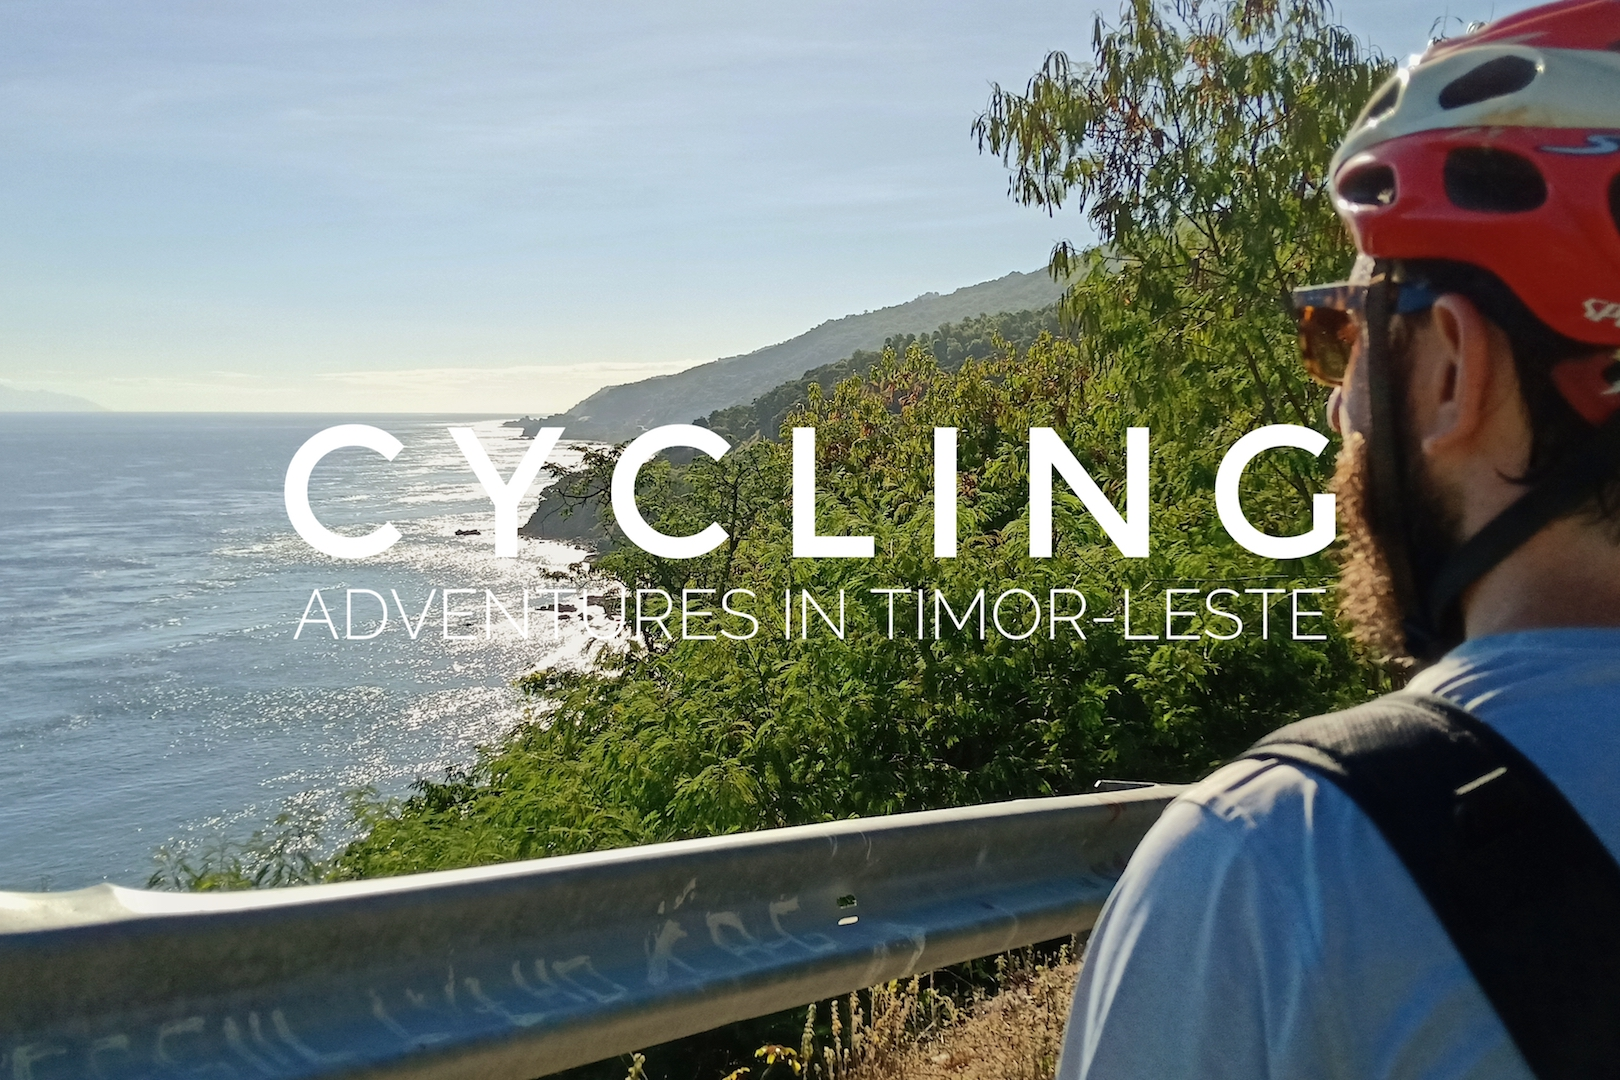 A Cycling Adventure in Timor-Leste